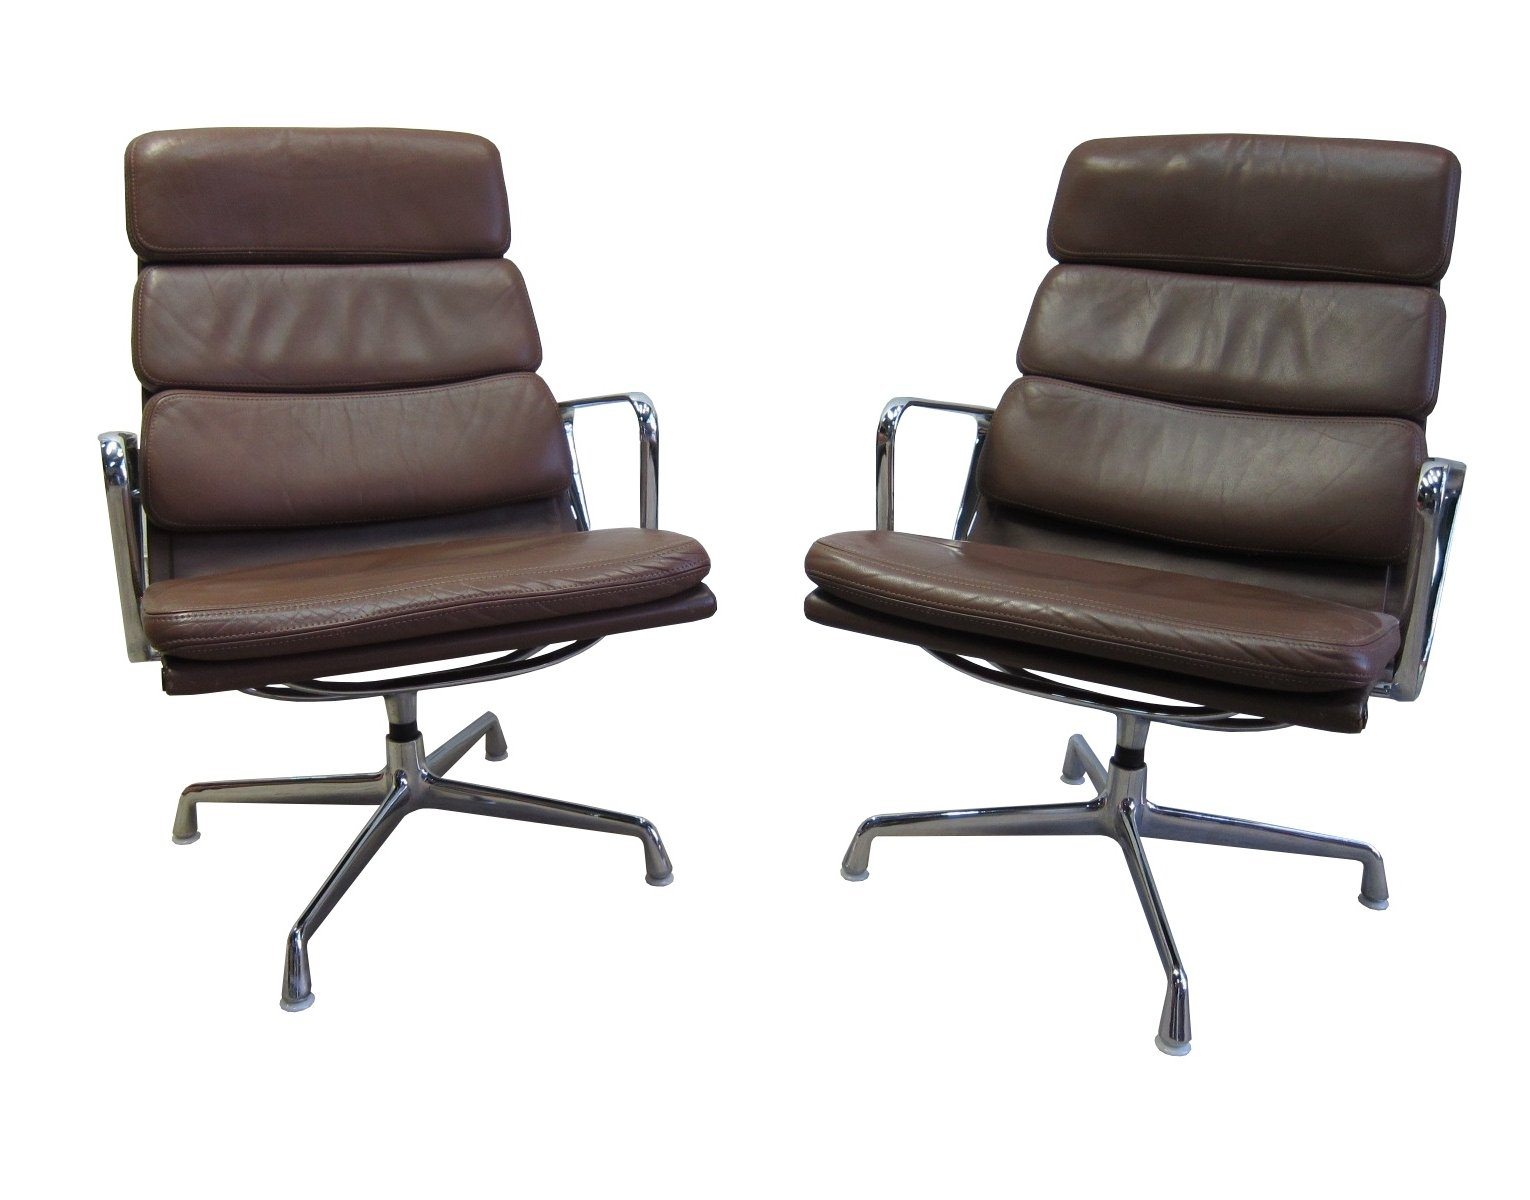 Ea216 softpad lounge chairs by eames for herman miller by vitra 69516 - Eames chair herman miller ...